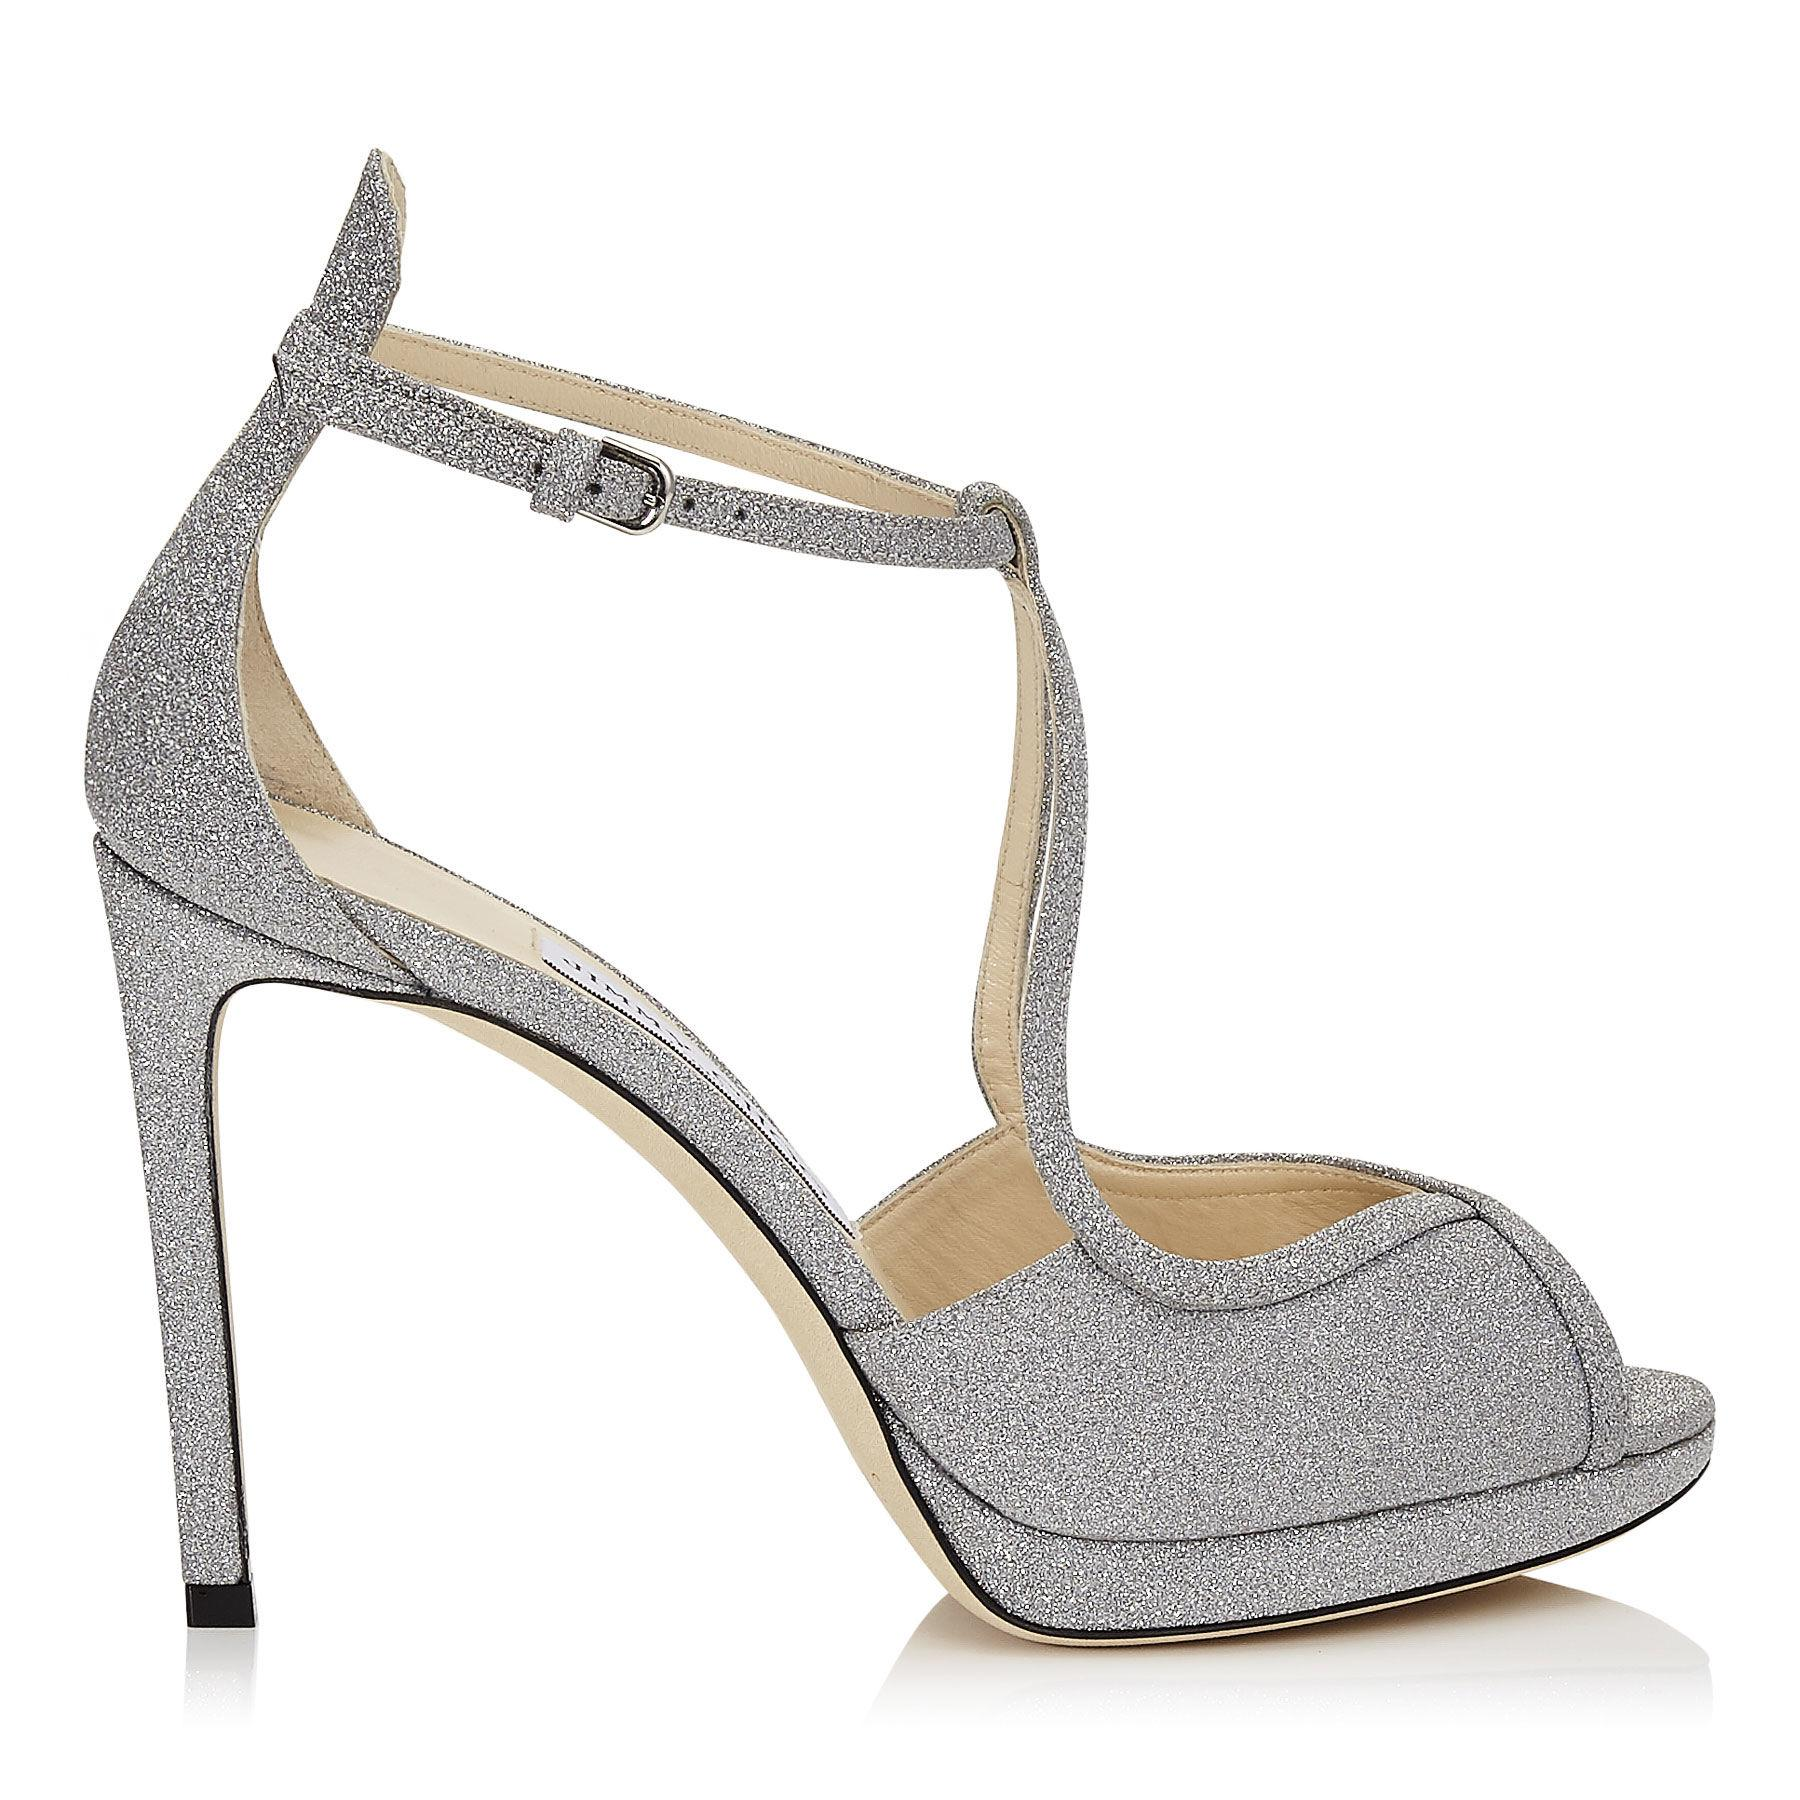 Fawne 100 sandals - Black Jimmy Choo London Fashion Style Sale Online Ebay Sale Online Cheap Low Shipping Fee Cheap Price Outlet Sale Cheapest Price WxS4c